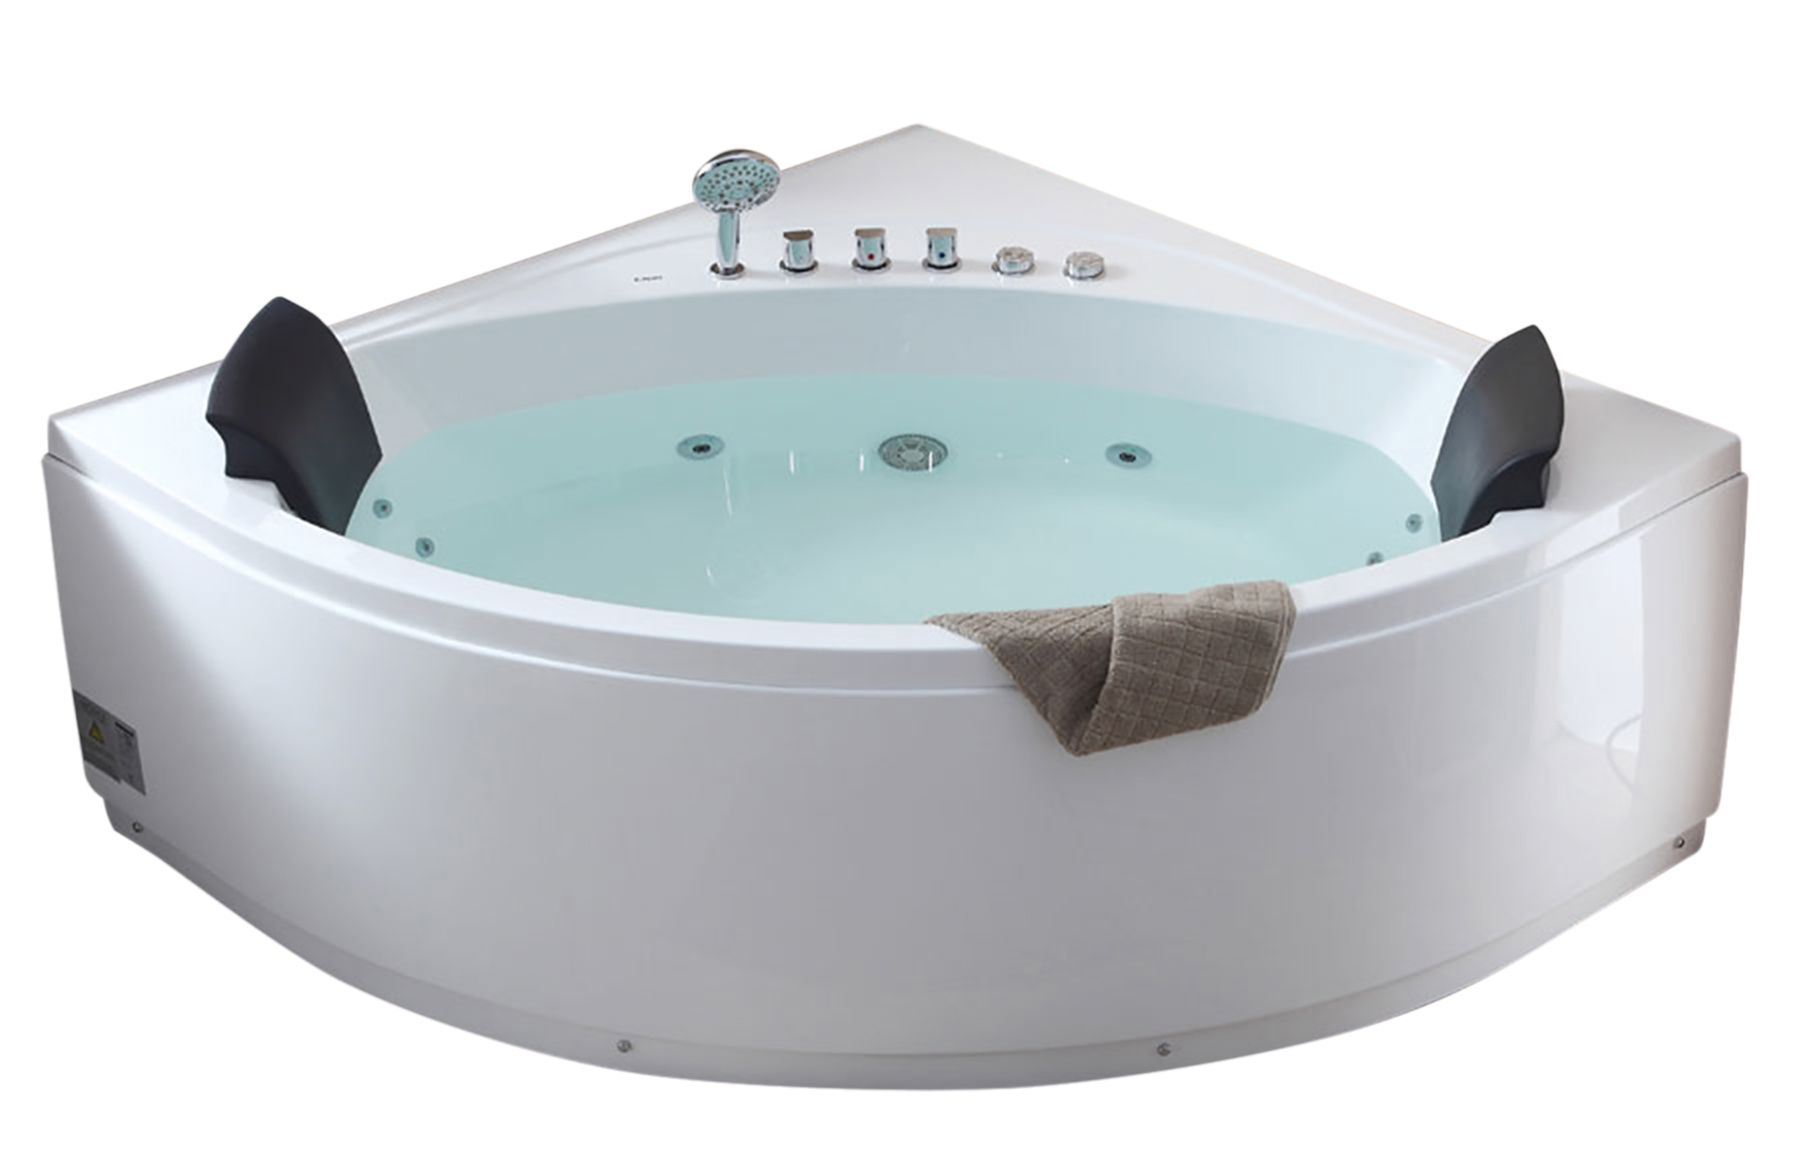 EAGO AM200 5\' Rounded Modern Double Seat Corner Whirlpool Bath Tub ...